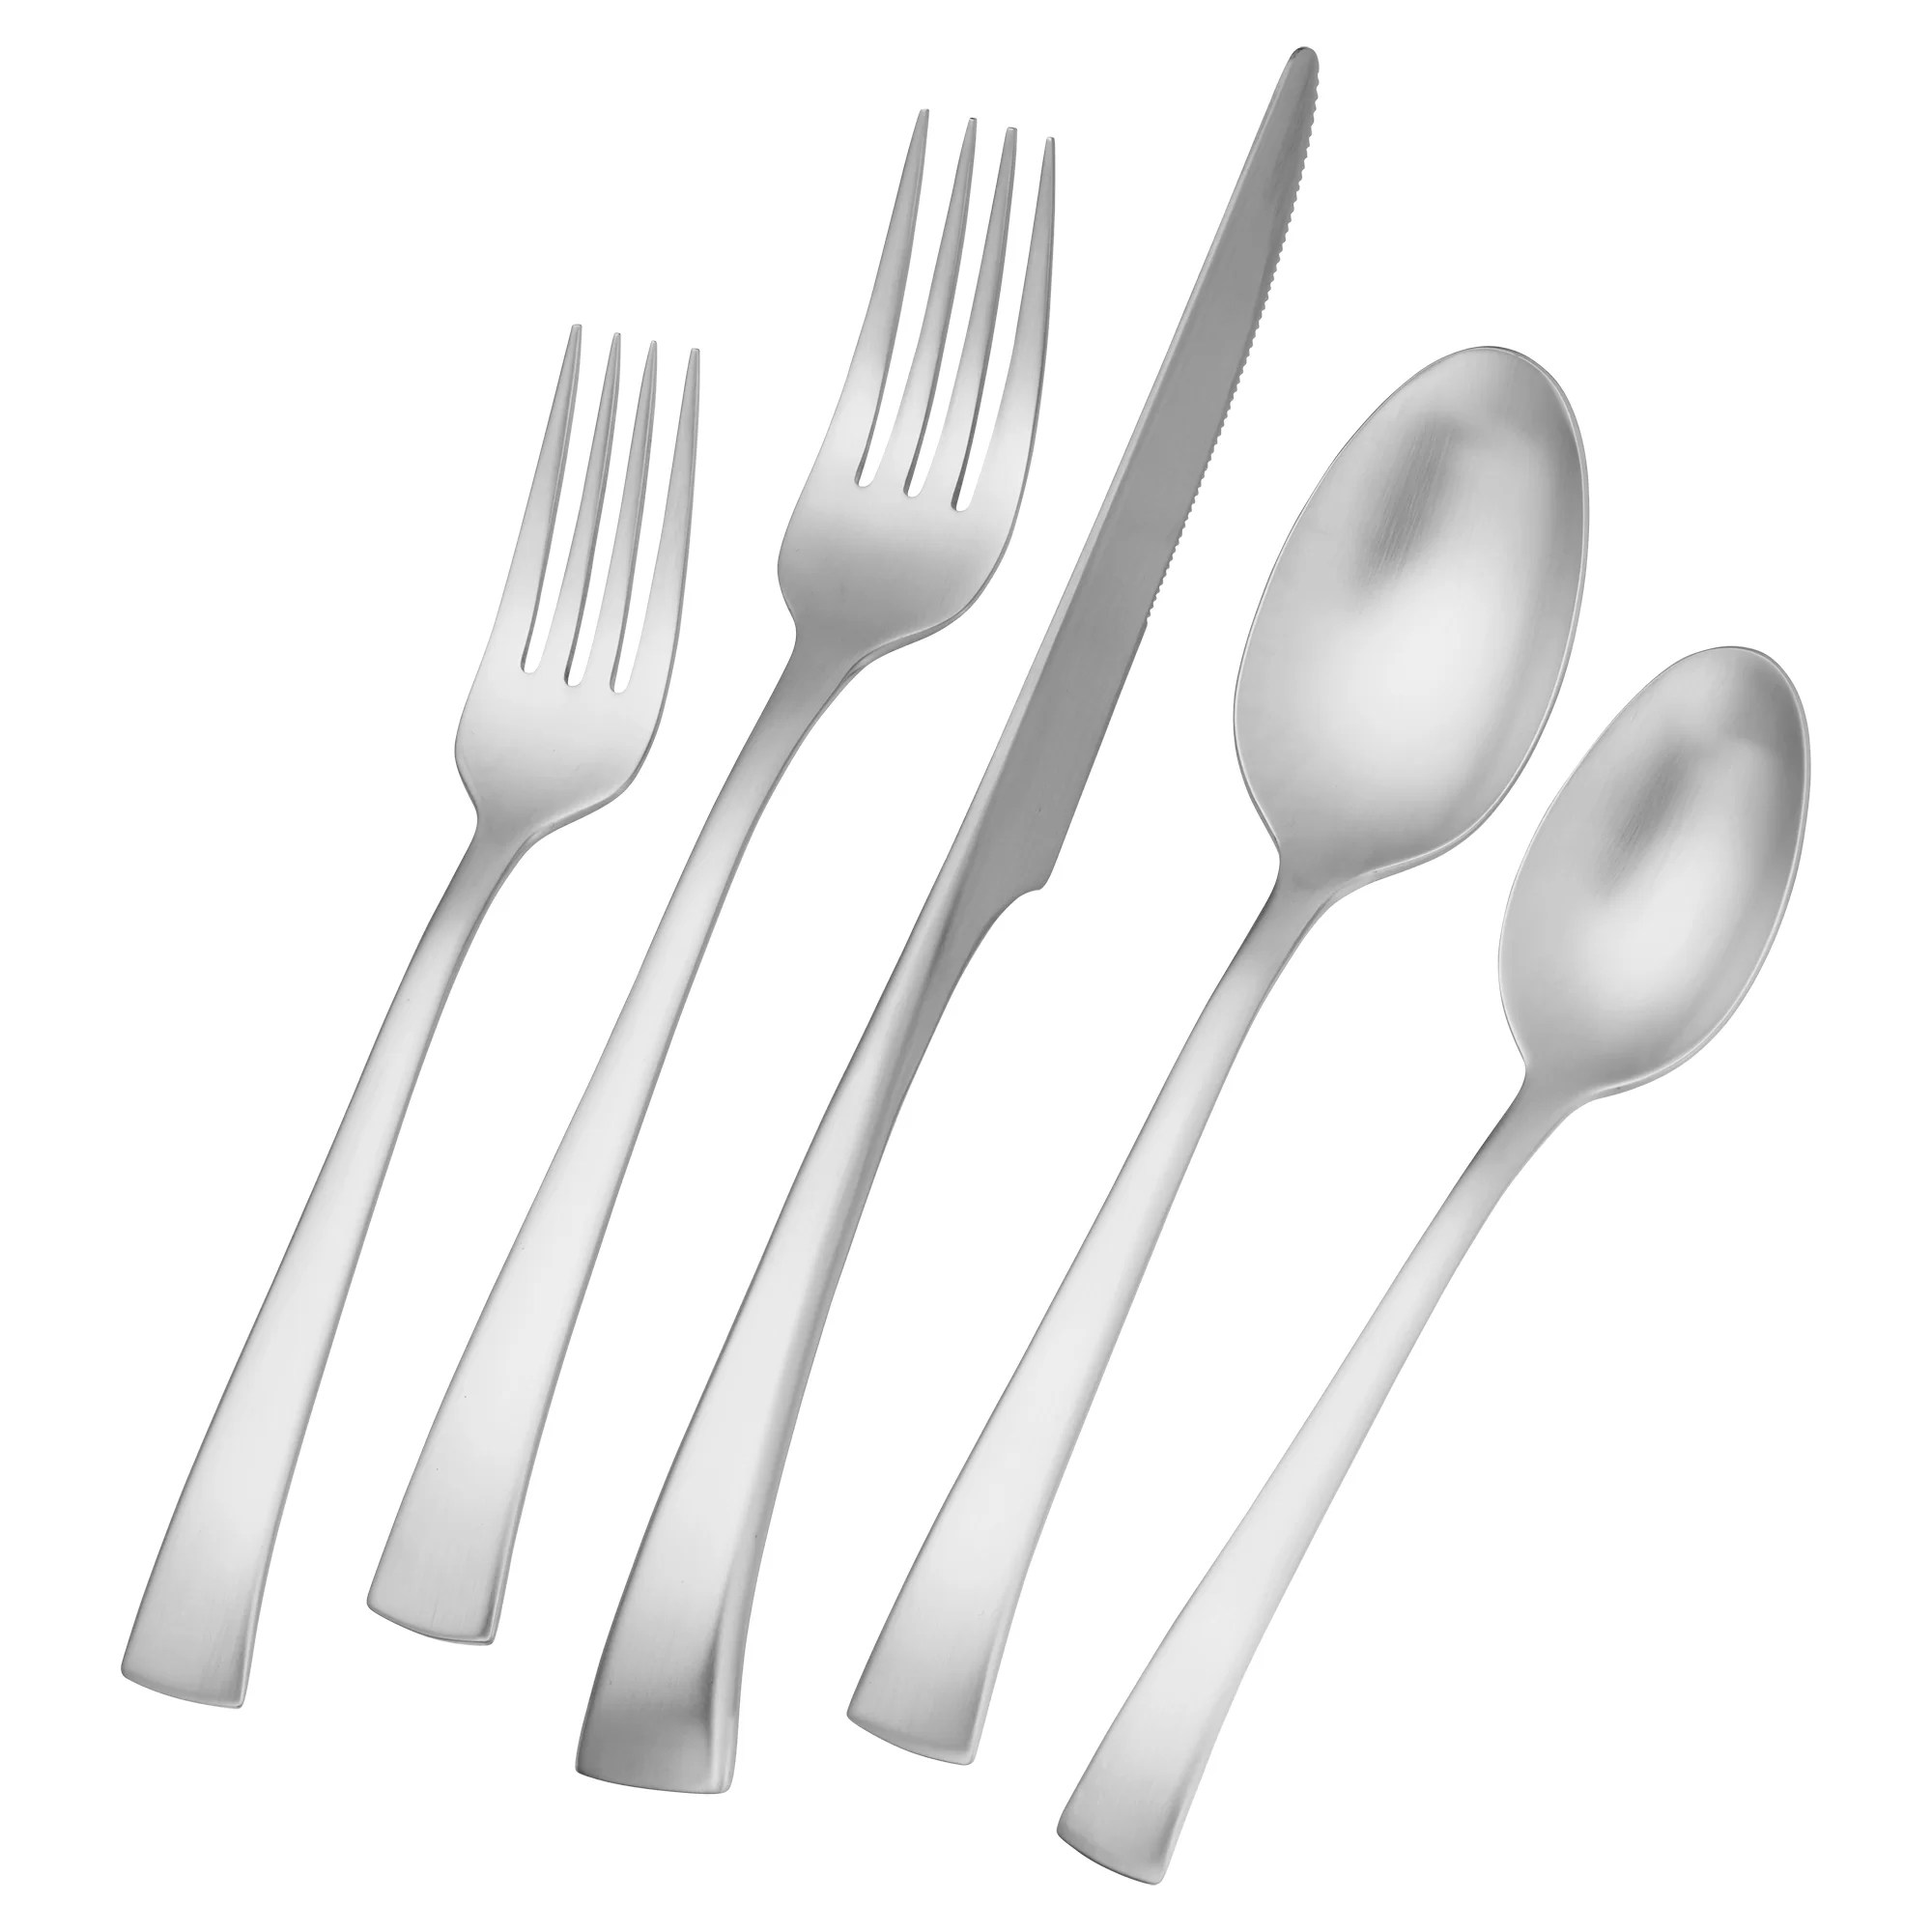 Discount Stainless Flatware Bellasera 45 Piece 18 10 Stainless Steel Flatware Set Service For 8